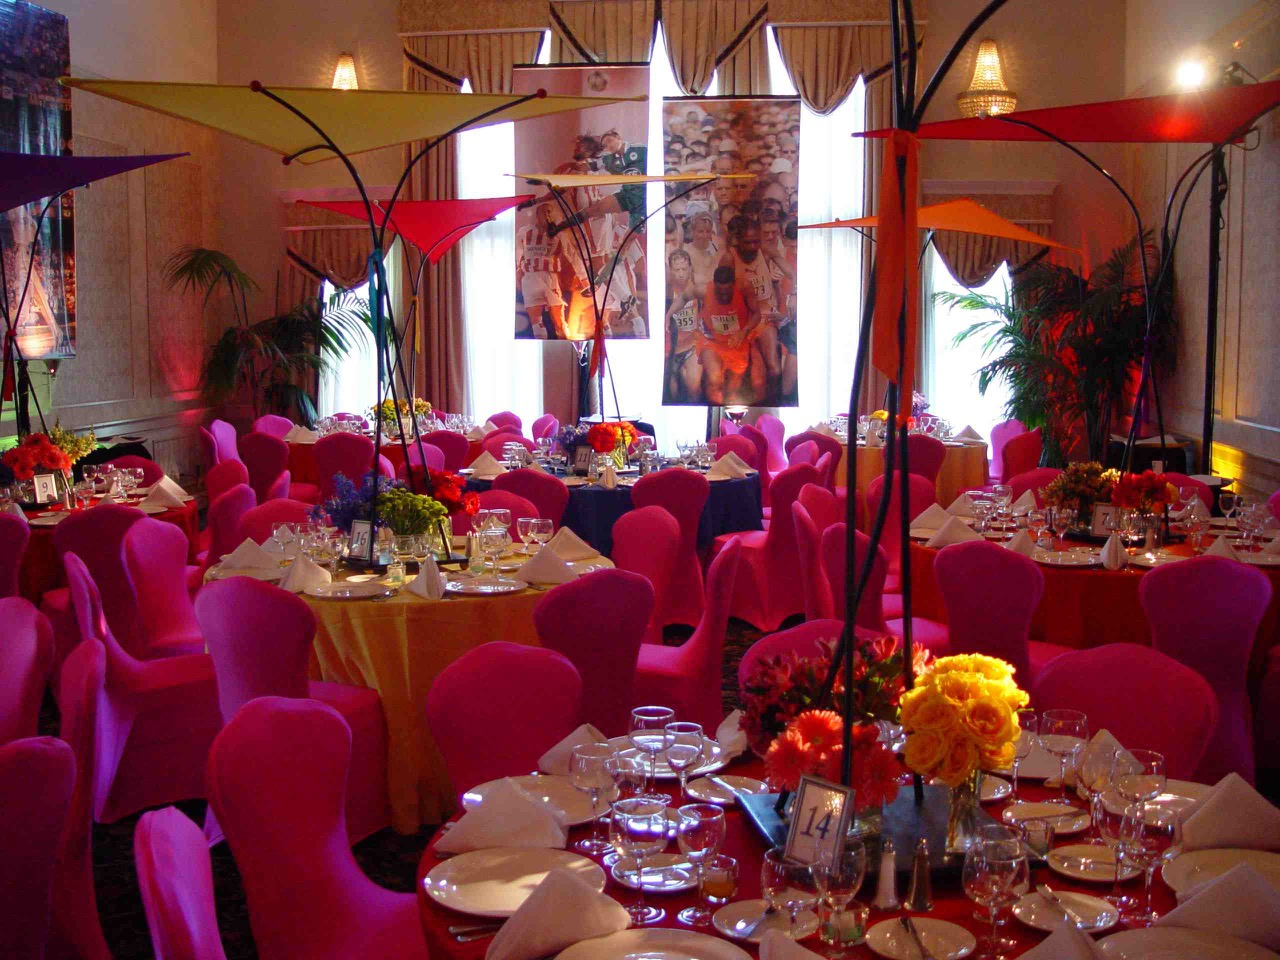 Sports Theme Centerpieces Decor and Lighting by Eggsotic Events NJ Event Design and Decor Rental  - 5.jpg